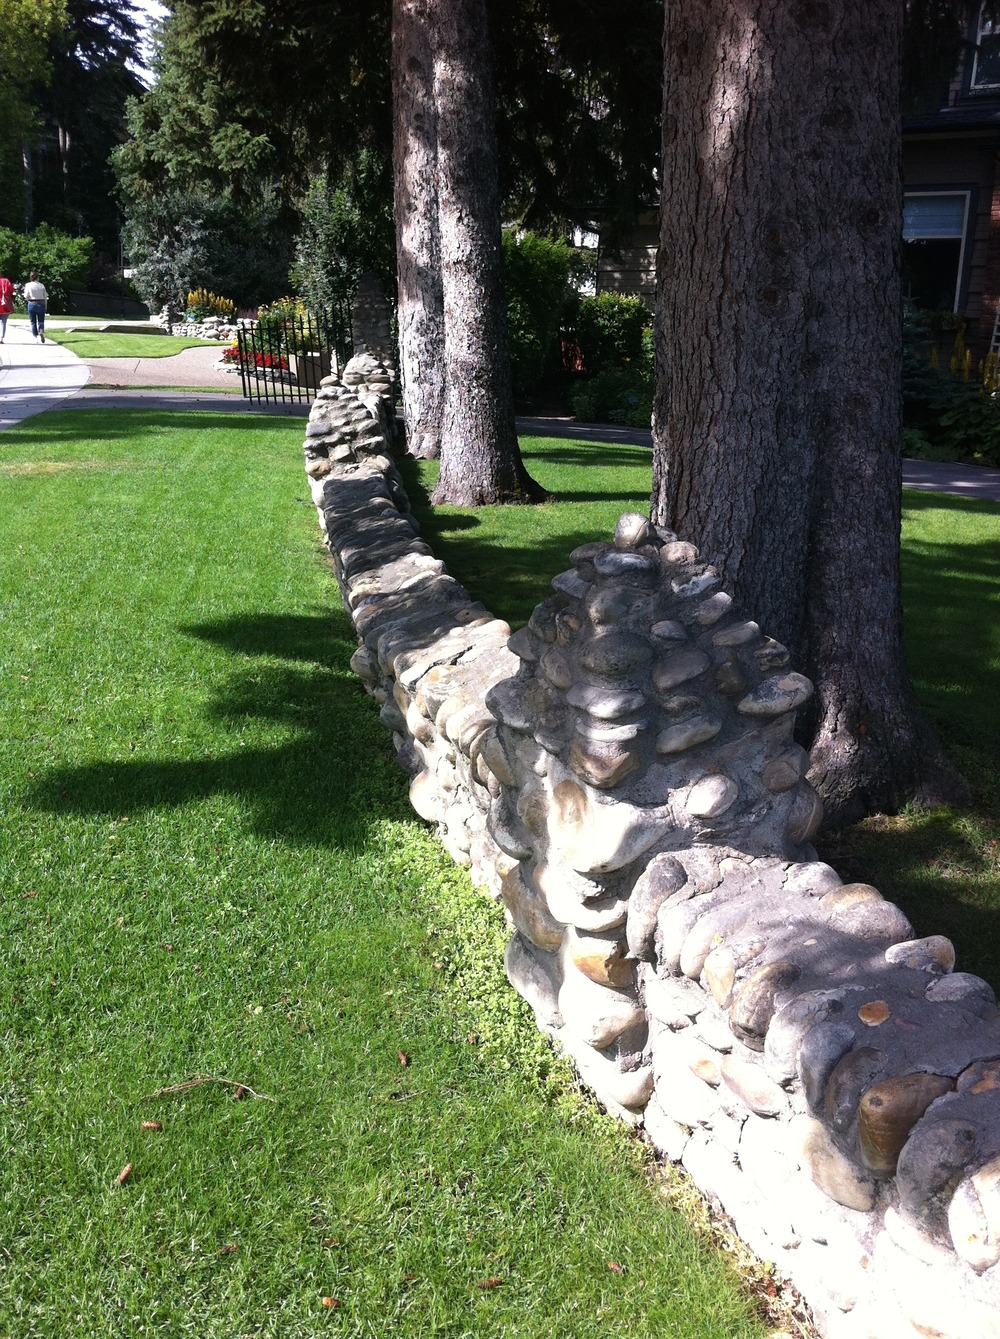 One of the many river rock walls from the early 20th Century that add charm to the community.